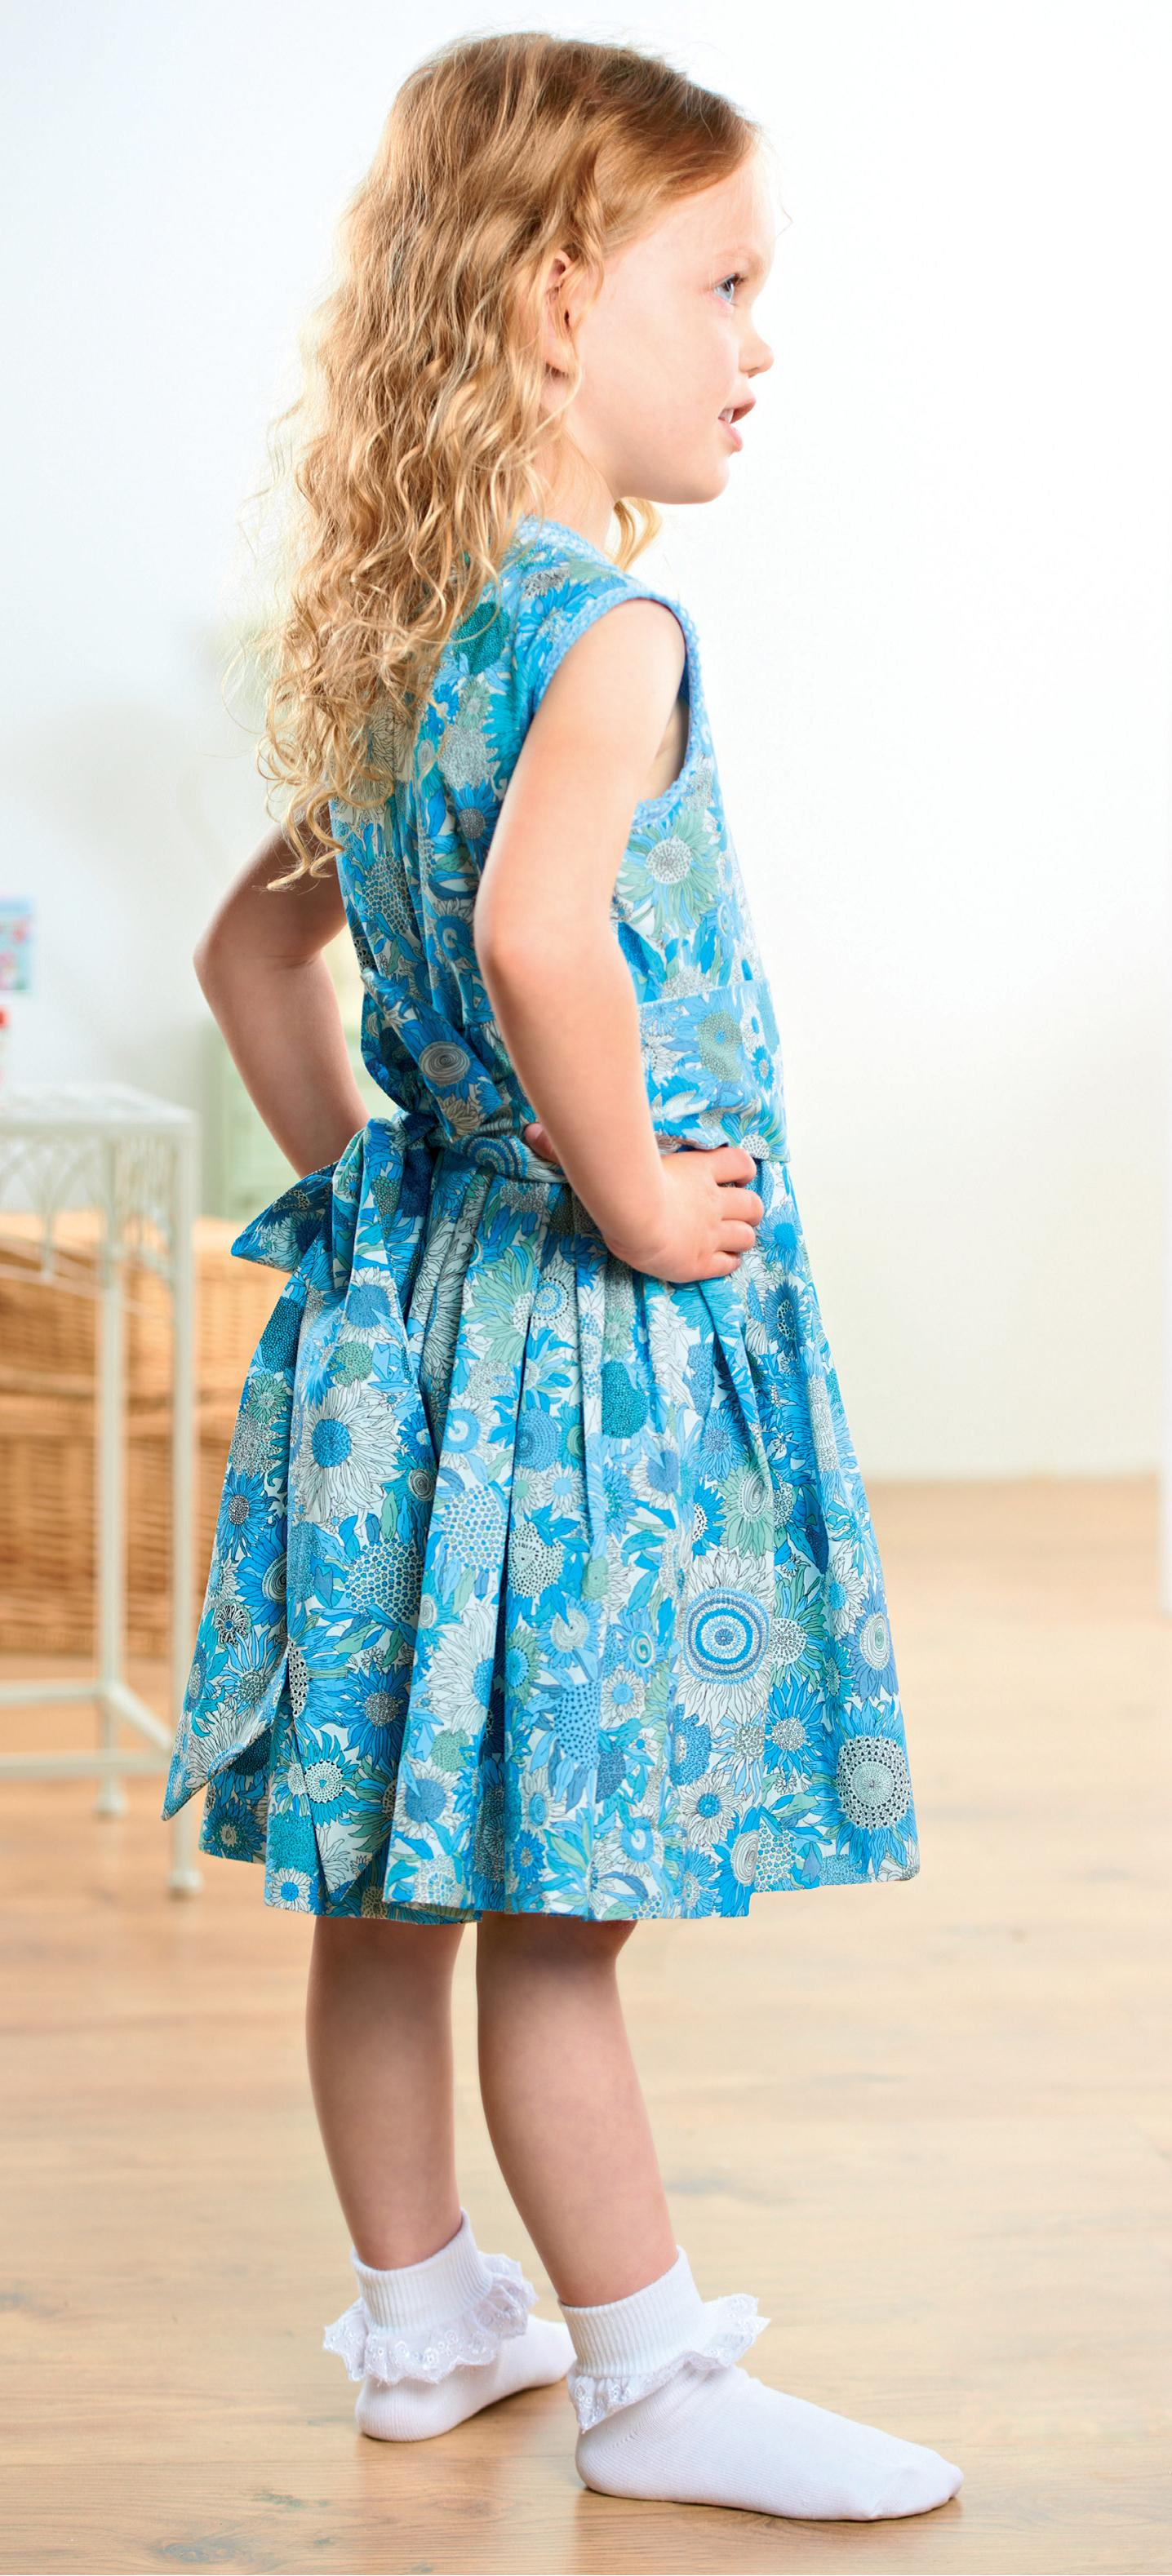 Young Girl\'s Liberty Party Dresses - Free sewing patterns - Sew Magazine